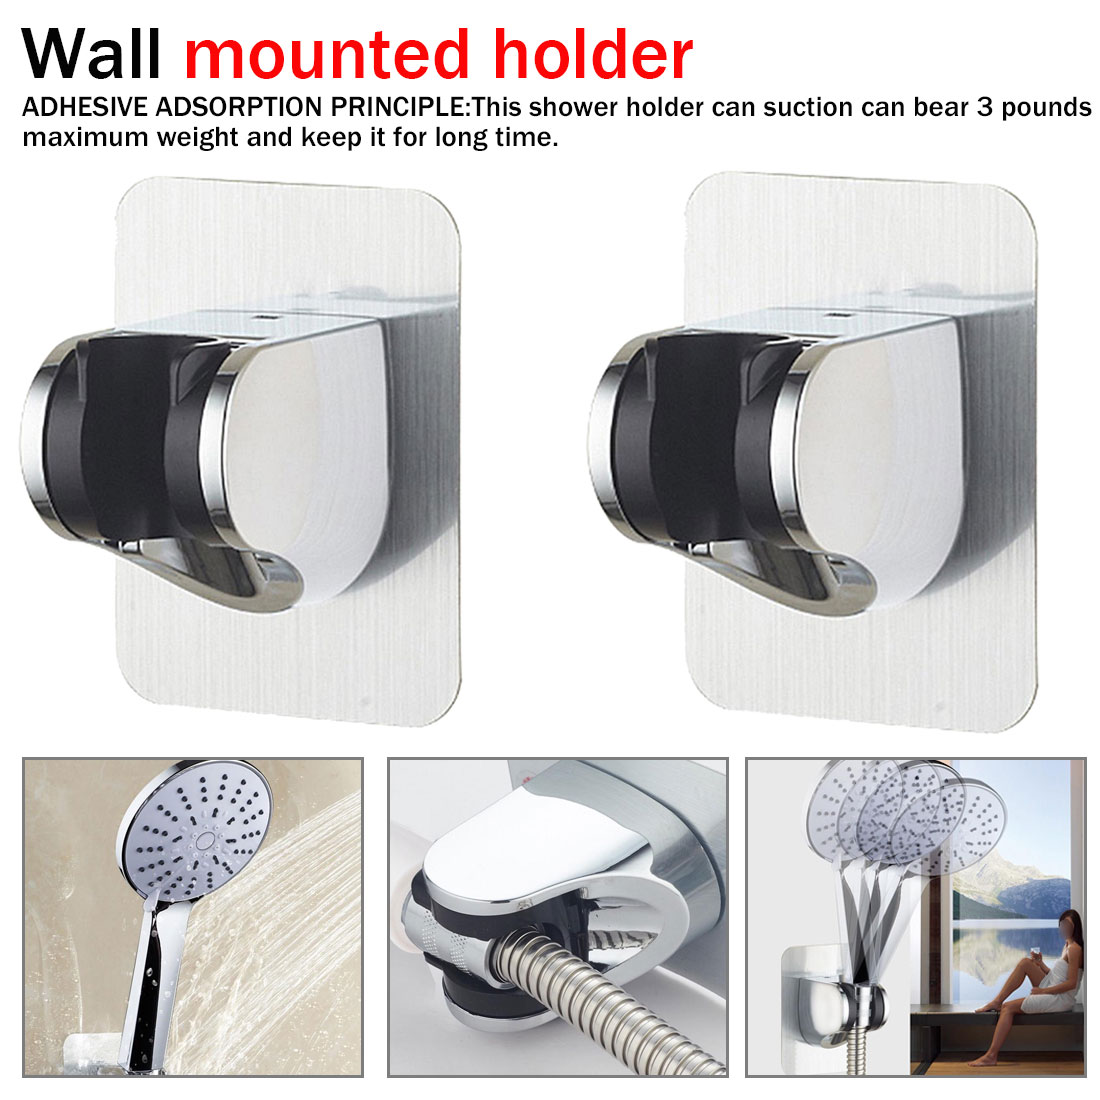 Wall Mounted Bathroom Shower Bracket Adjustable Self-adhesive Suction Cup Chrome Polished Shower Head Holder